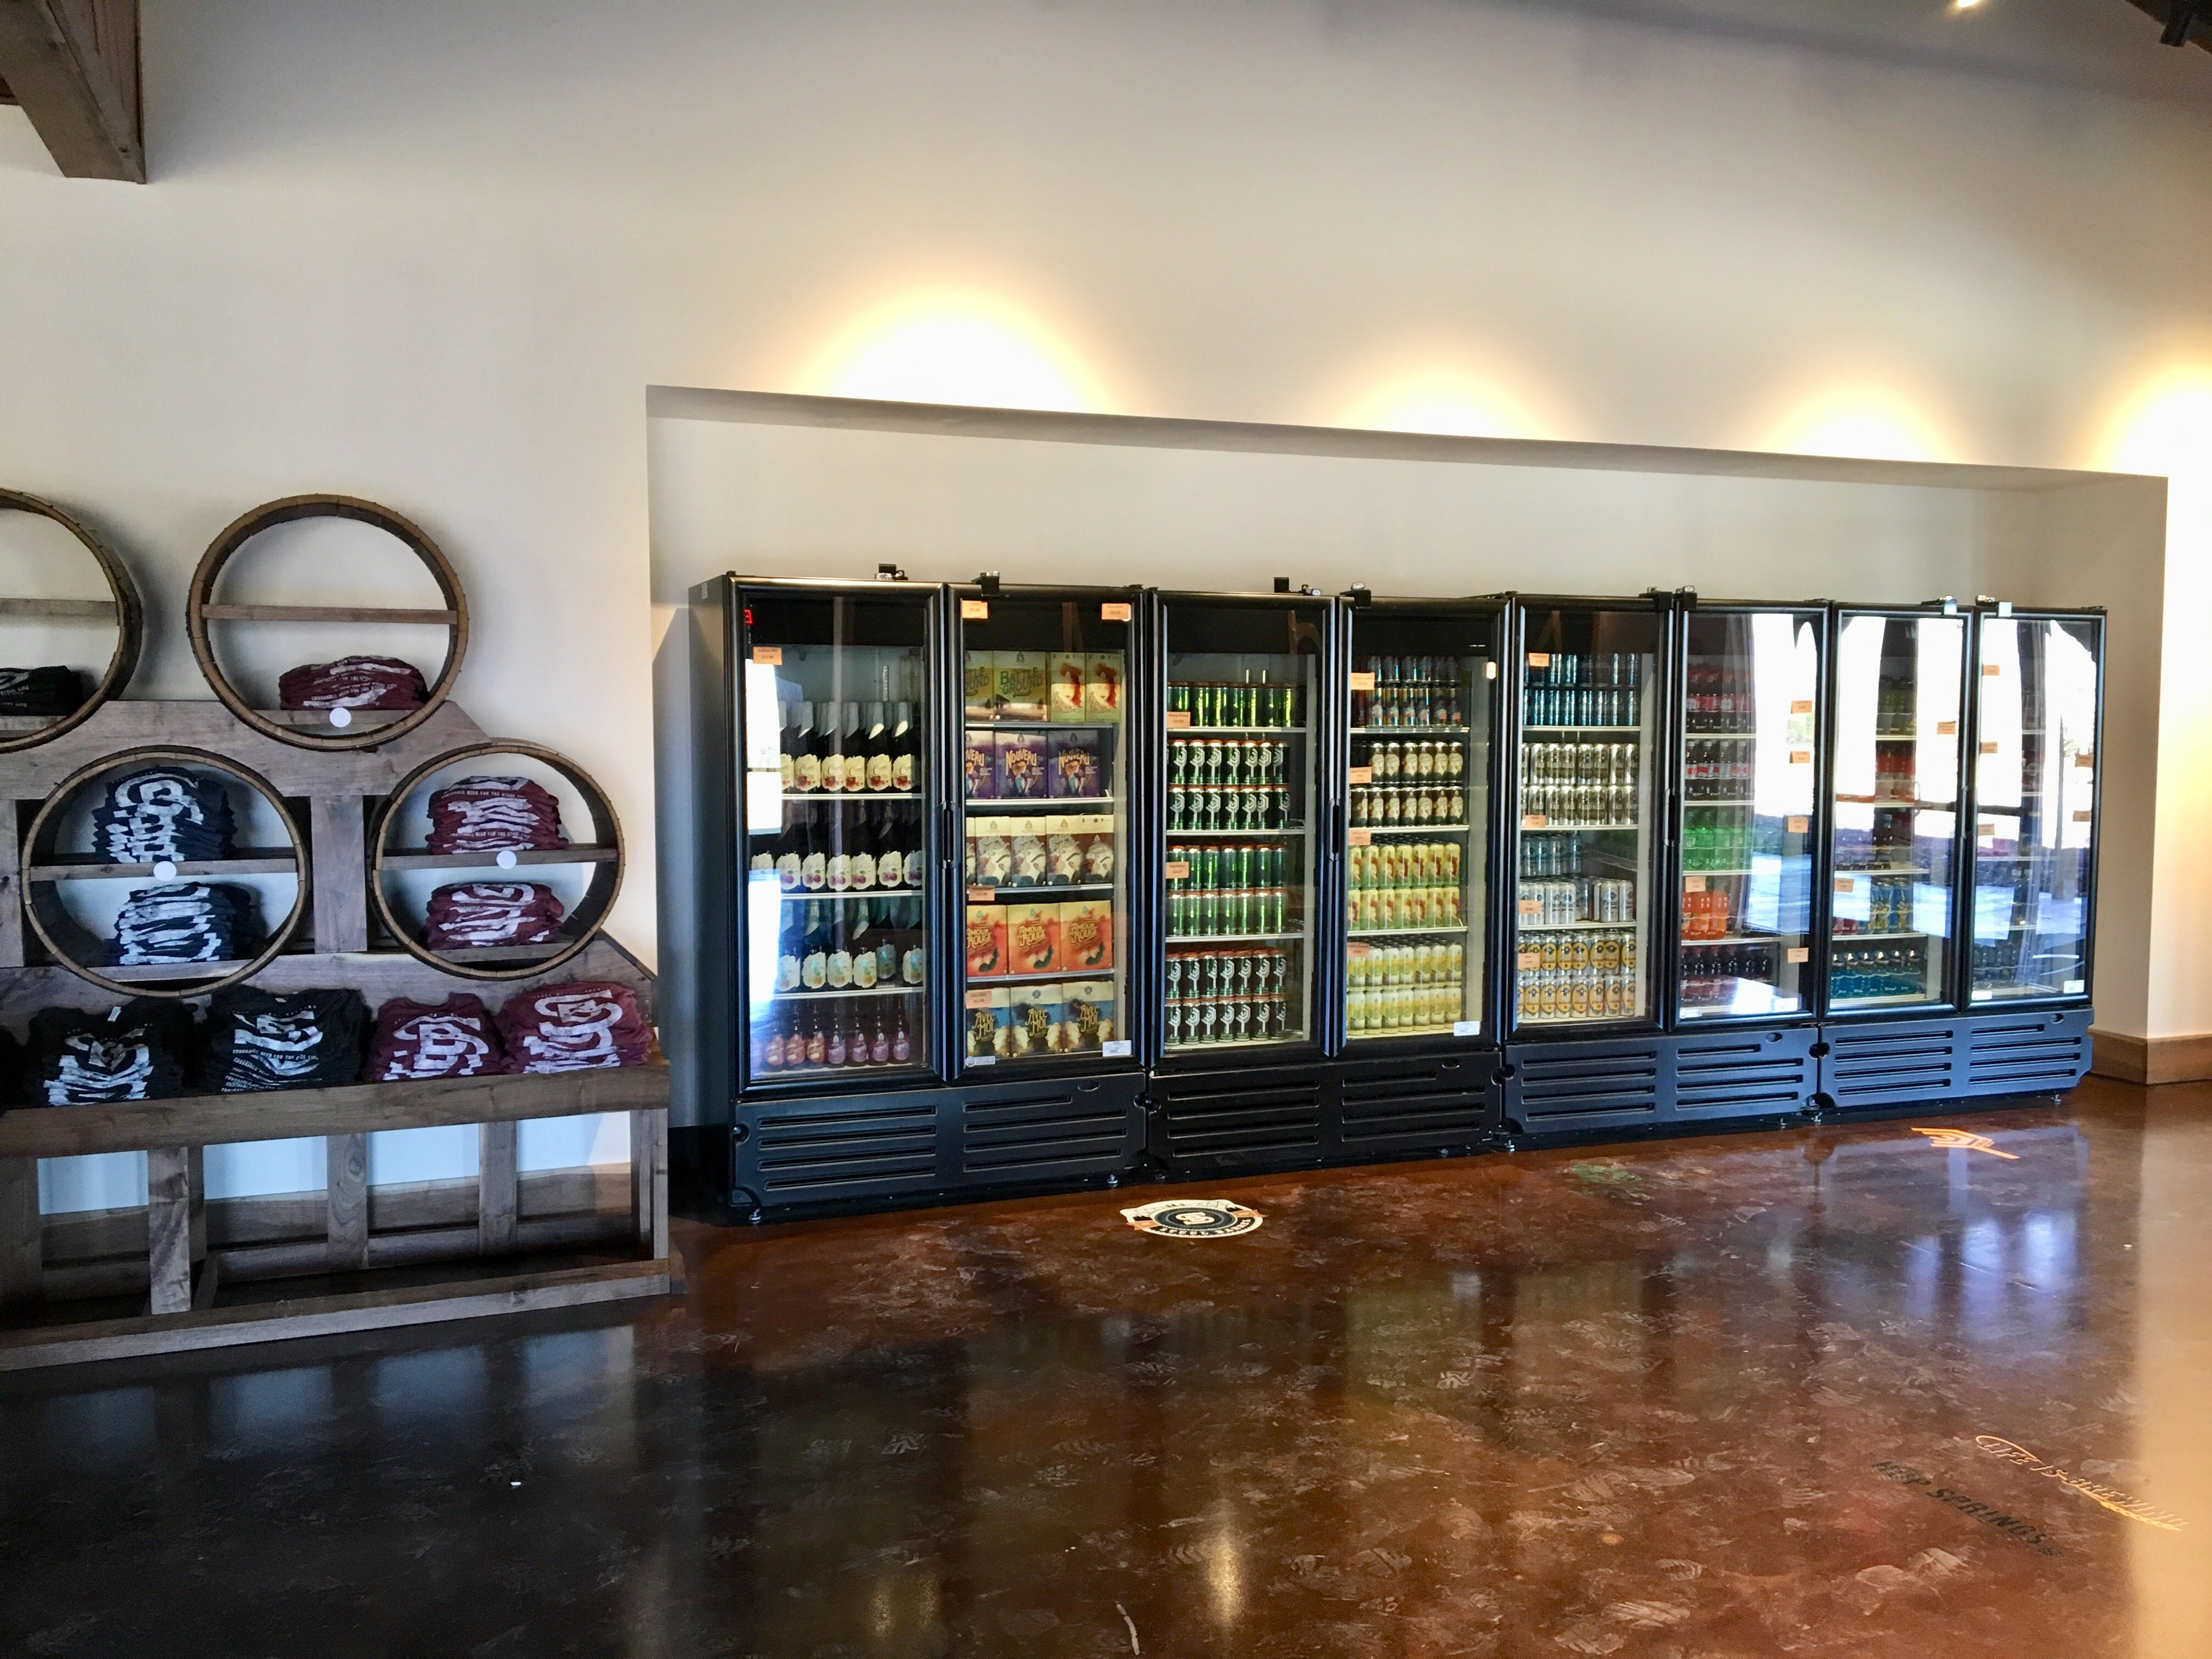 Can't stay for a beer at Hop Springs Taproom? Take brews to go from the cooler. There will also be plenty of apparel and merchandise to purchase.